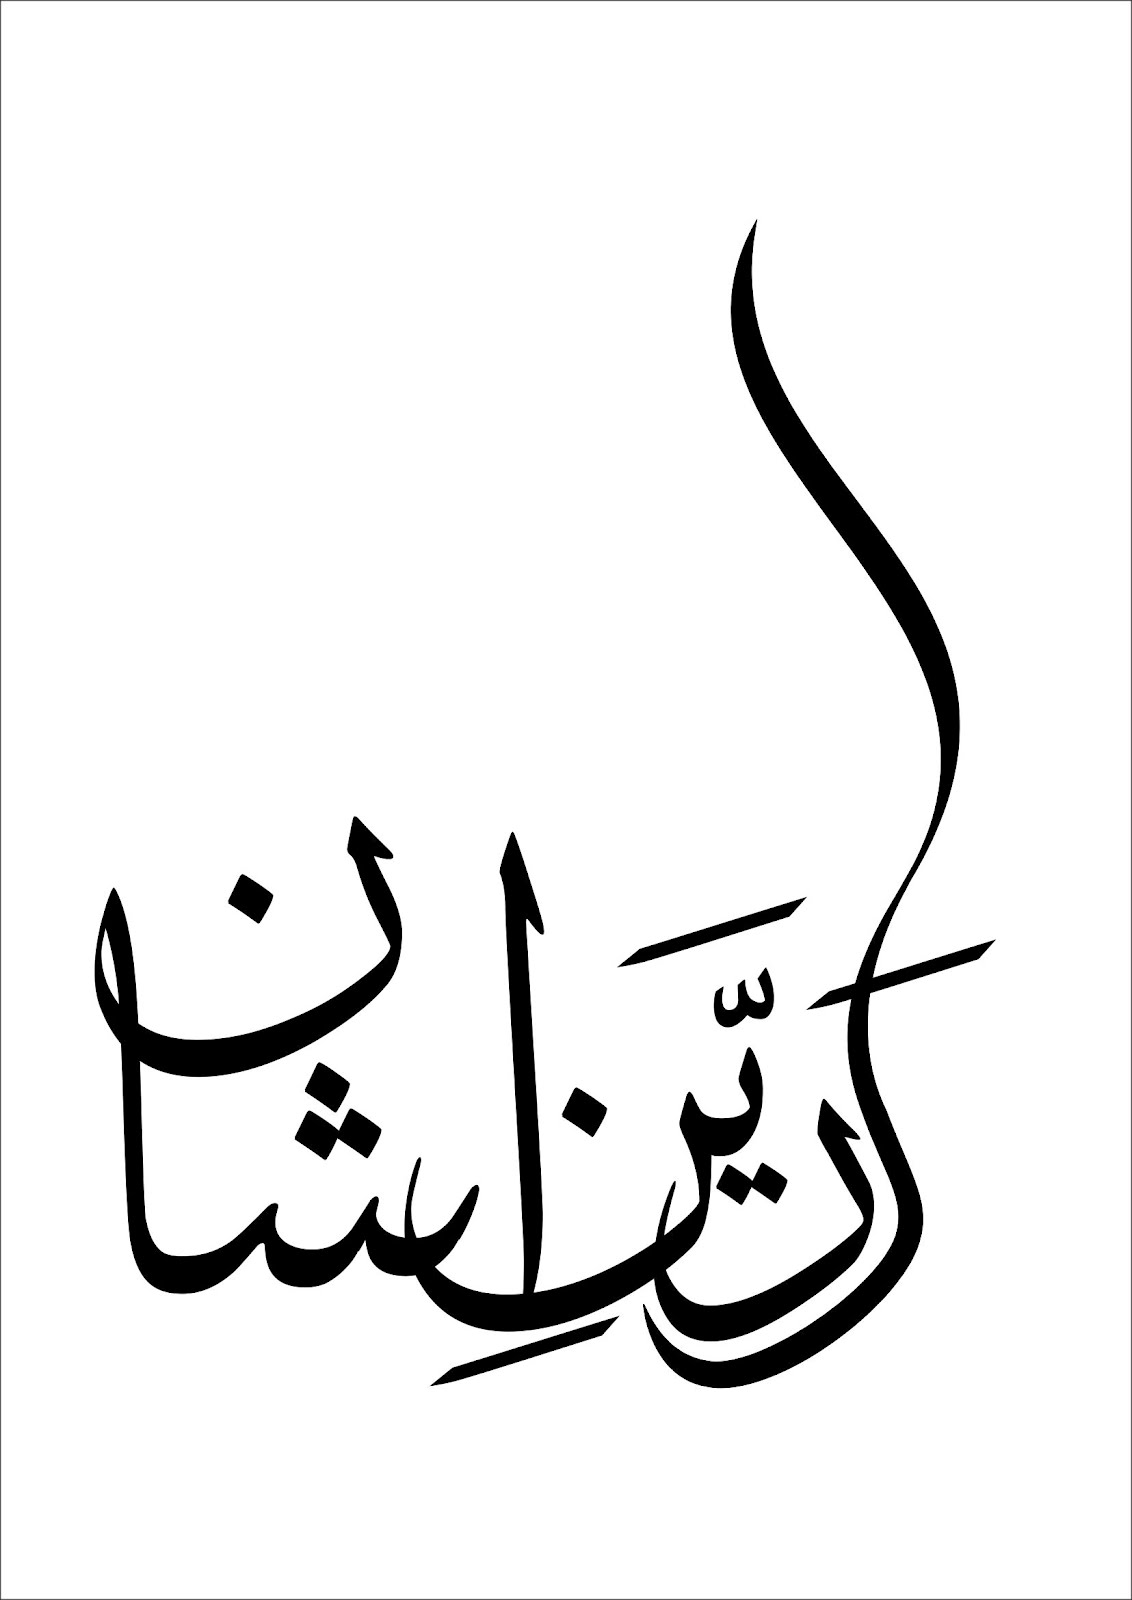 Make Your Name In Arabic Calligraphy Ask Your Name In